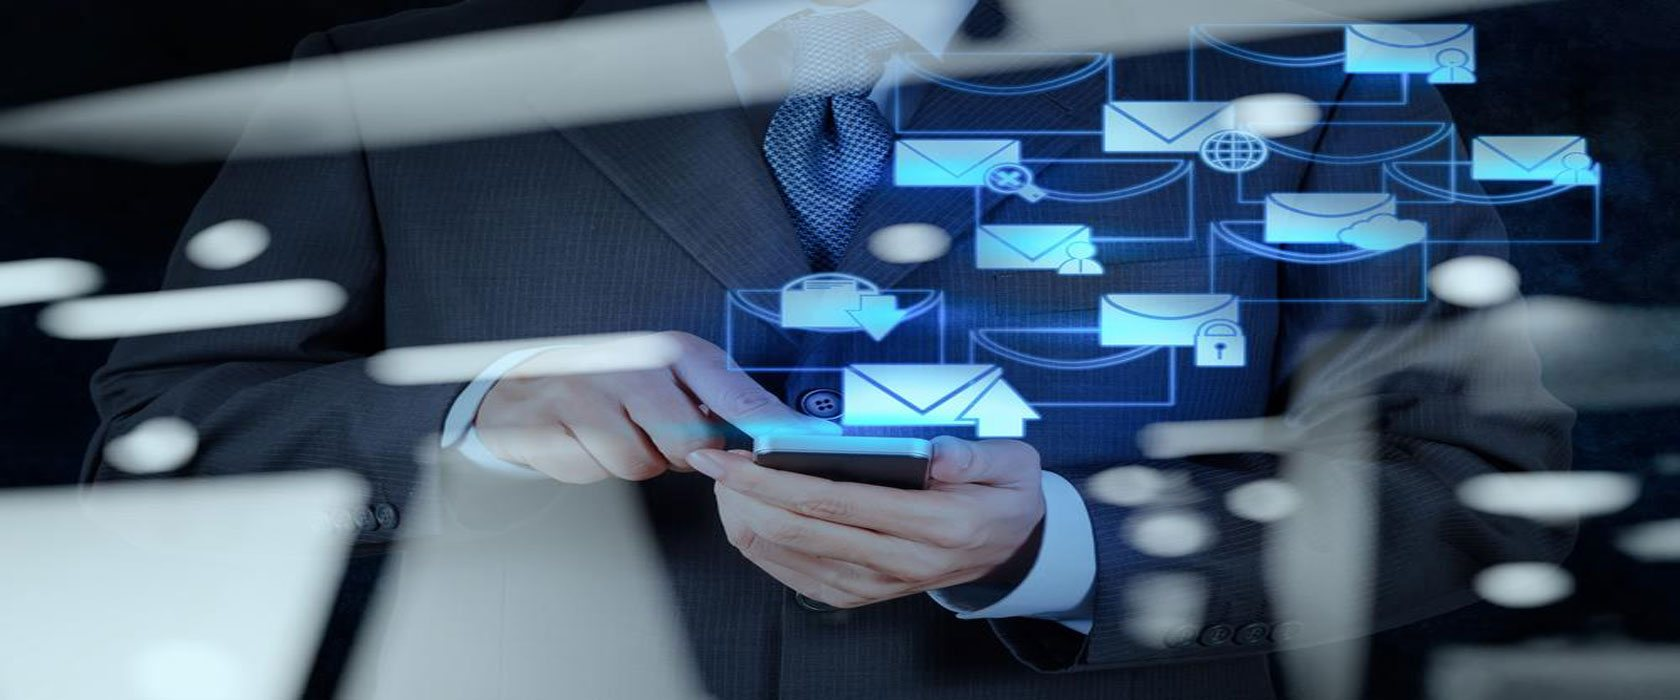 Bulk SMS Gateway Enables Delivering Bulk SMS For Fast And Simple Connectivity